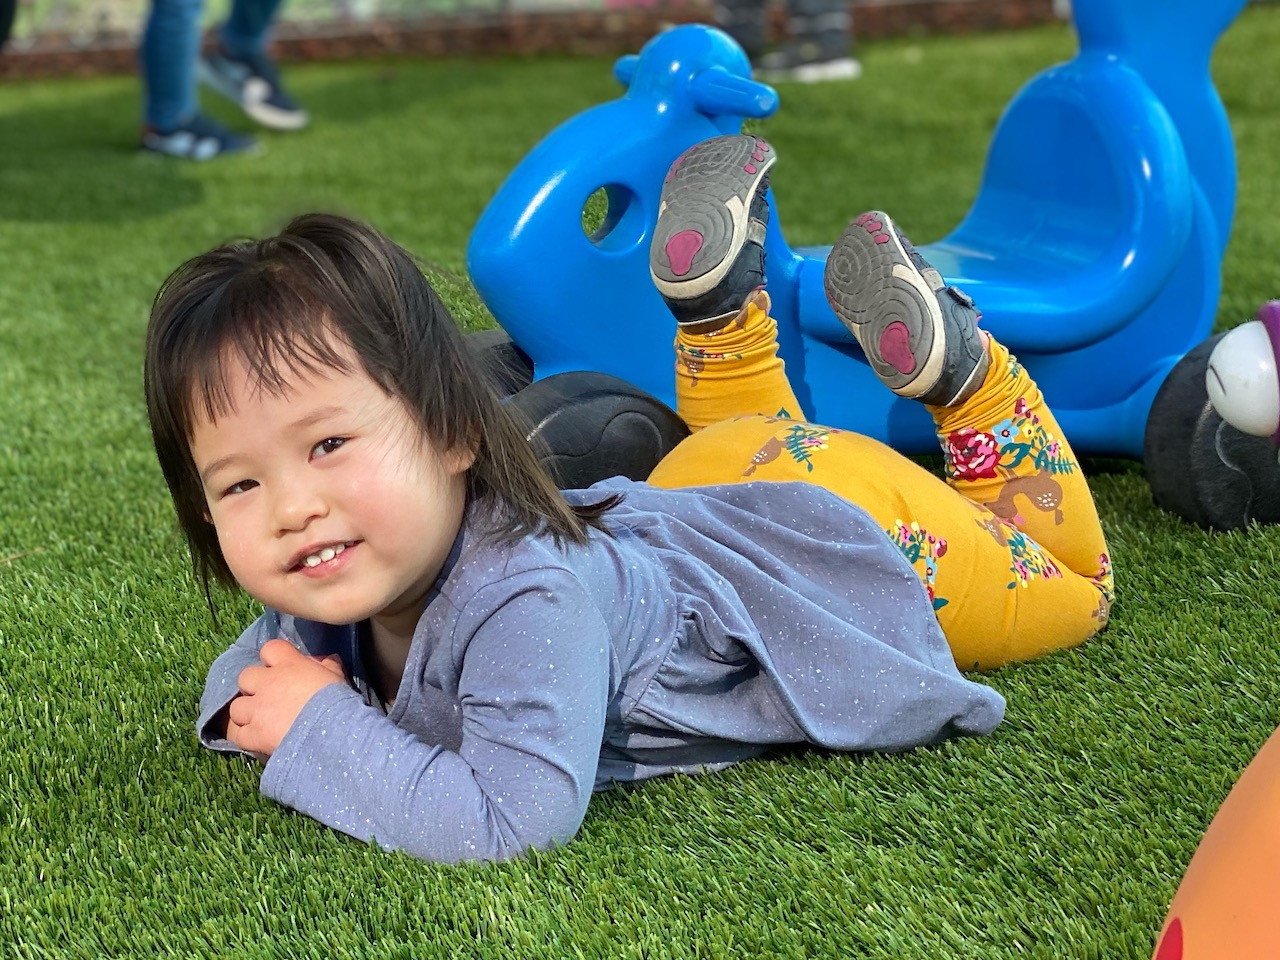 Happy Infant having fun rolling around soft turf